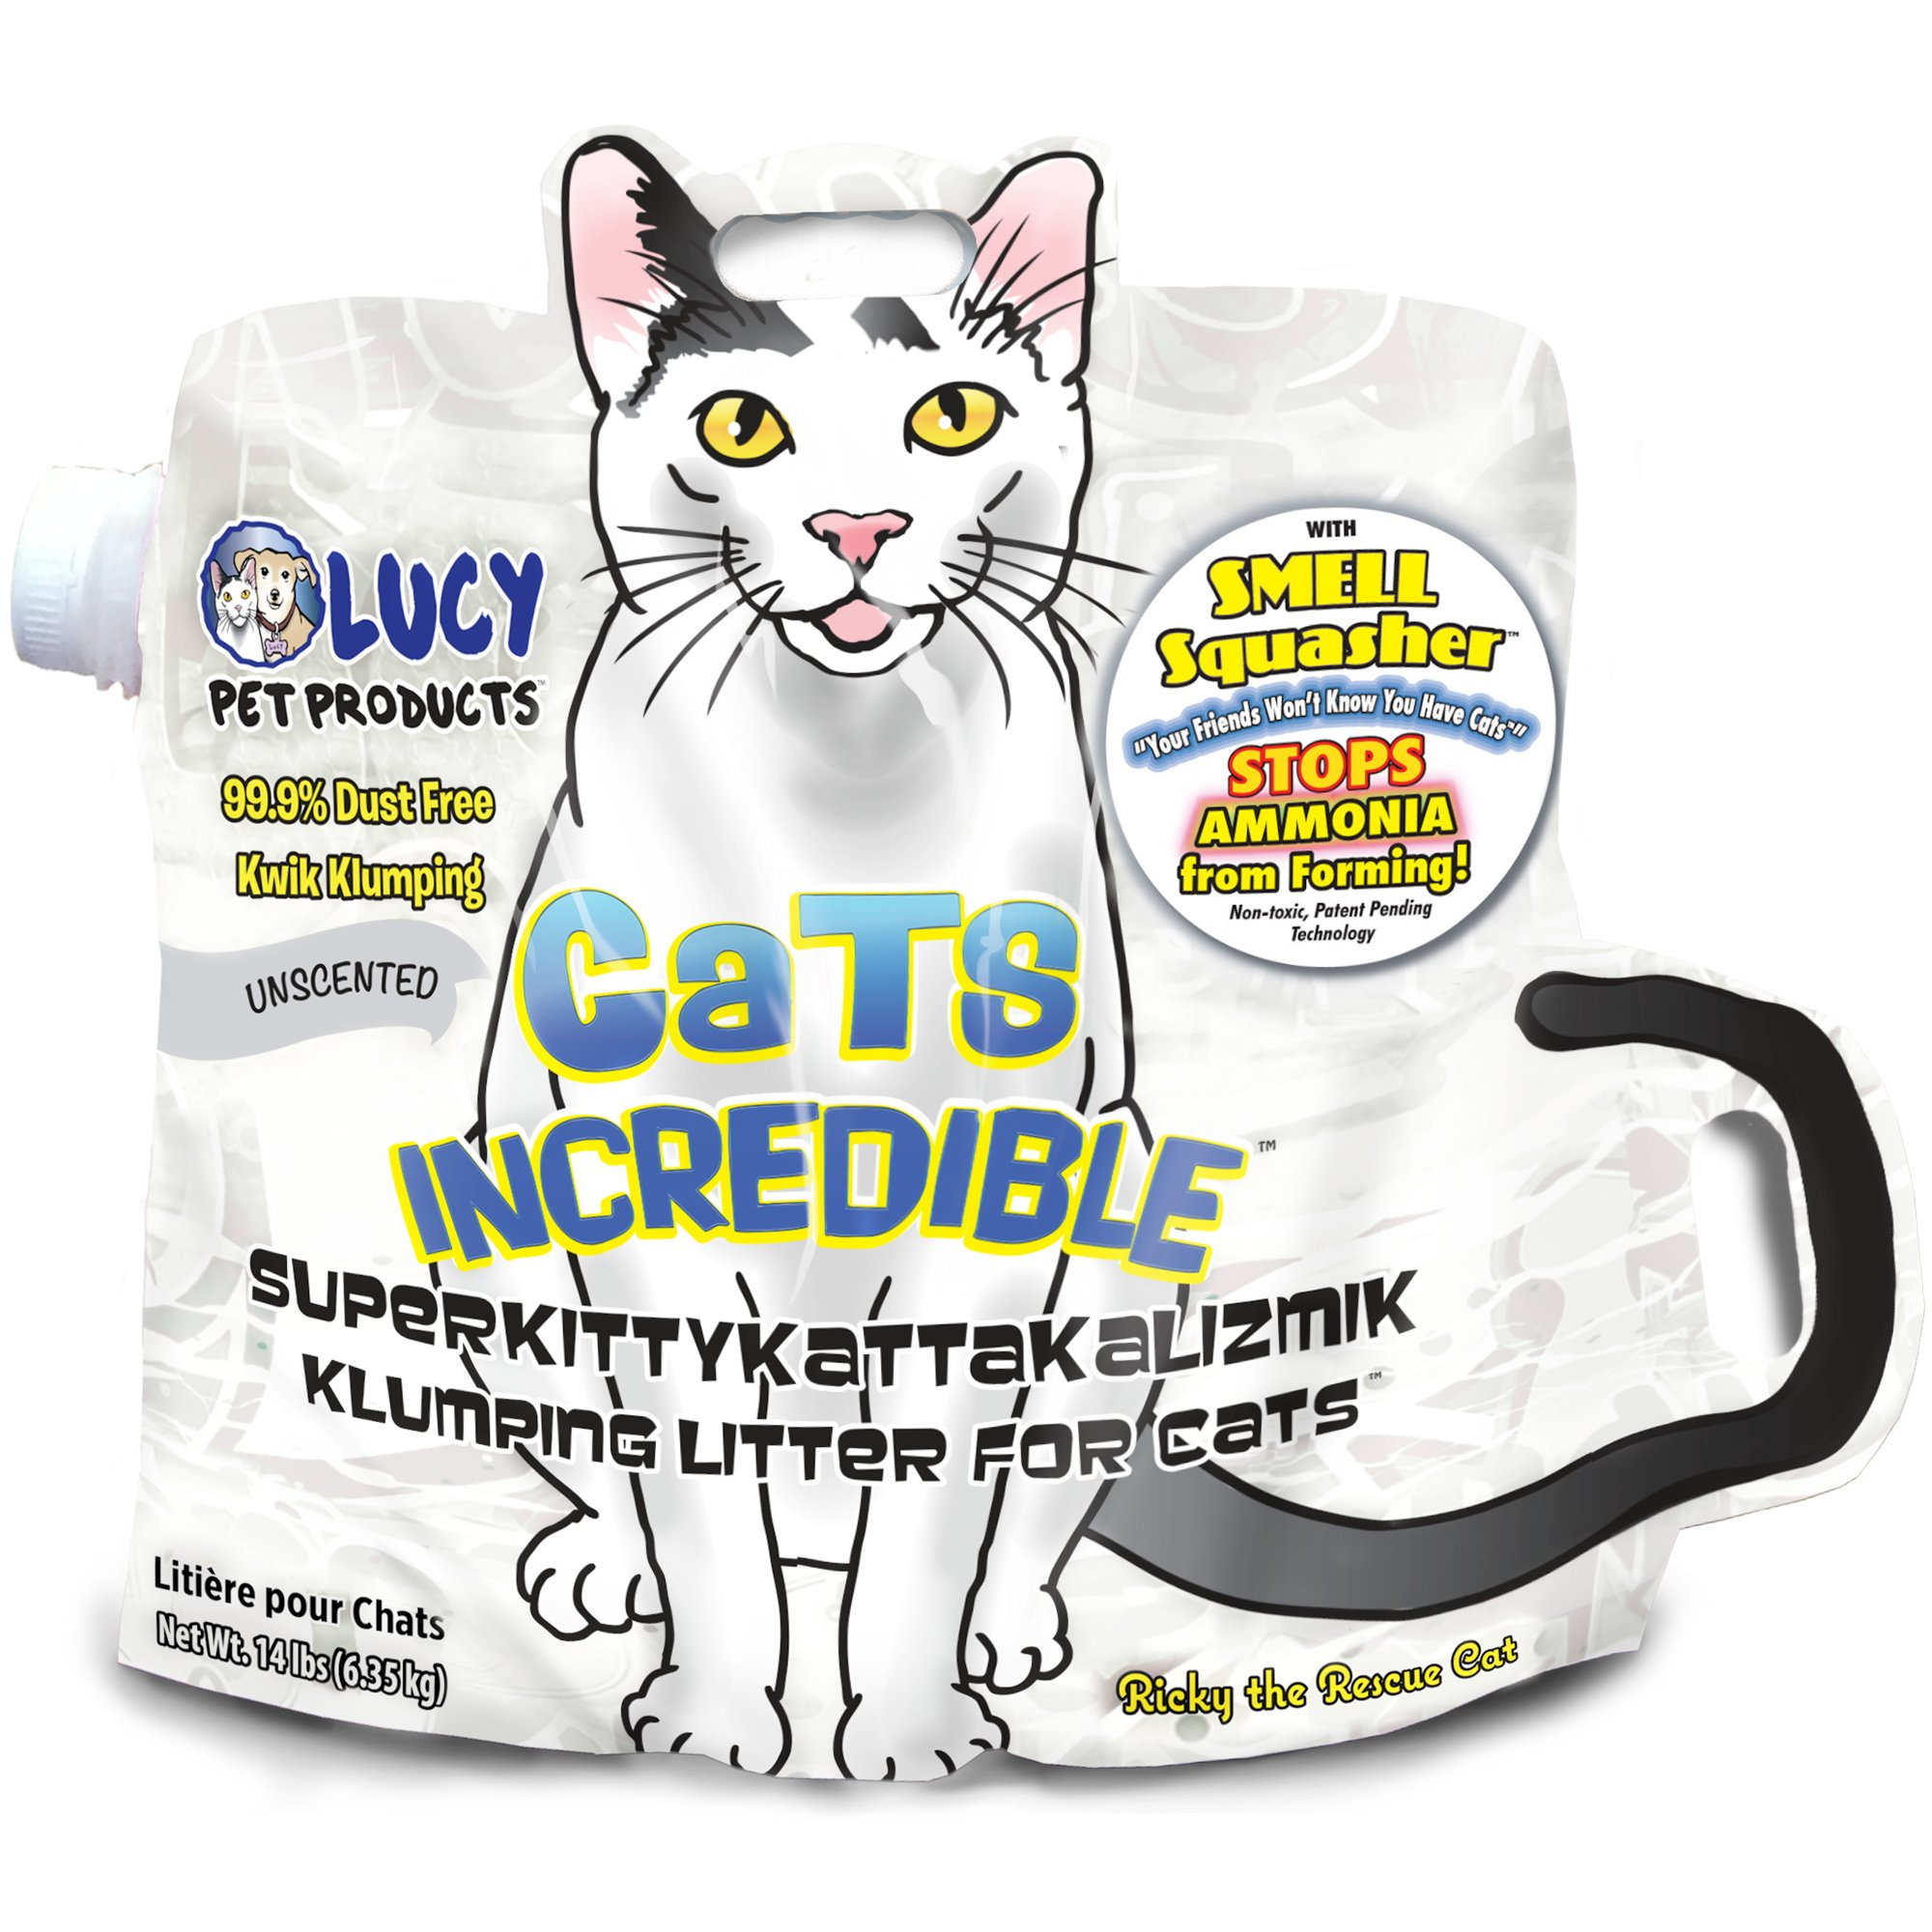 Cats Incredible with Smell Squasher Technology Unscented